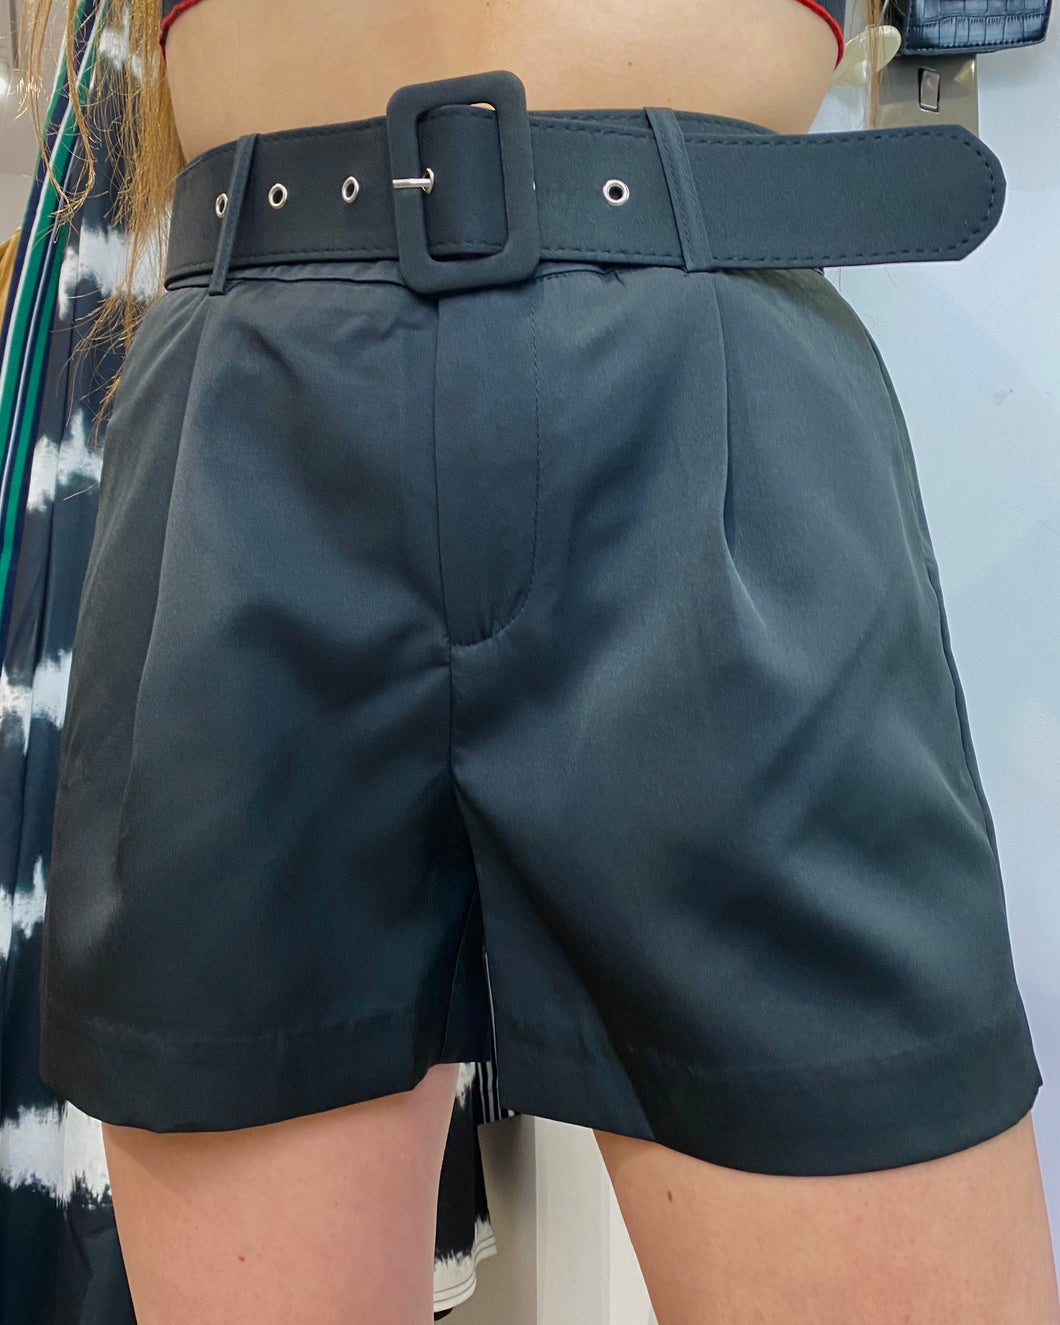 Vintage Inspired Shorts in Black with Belt in M